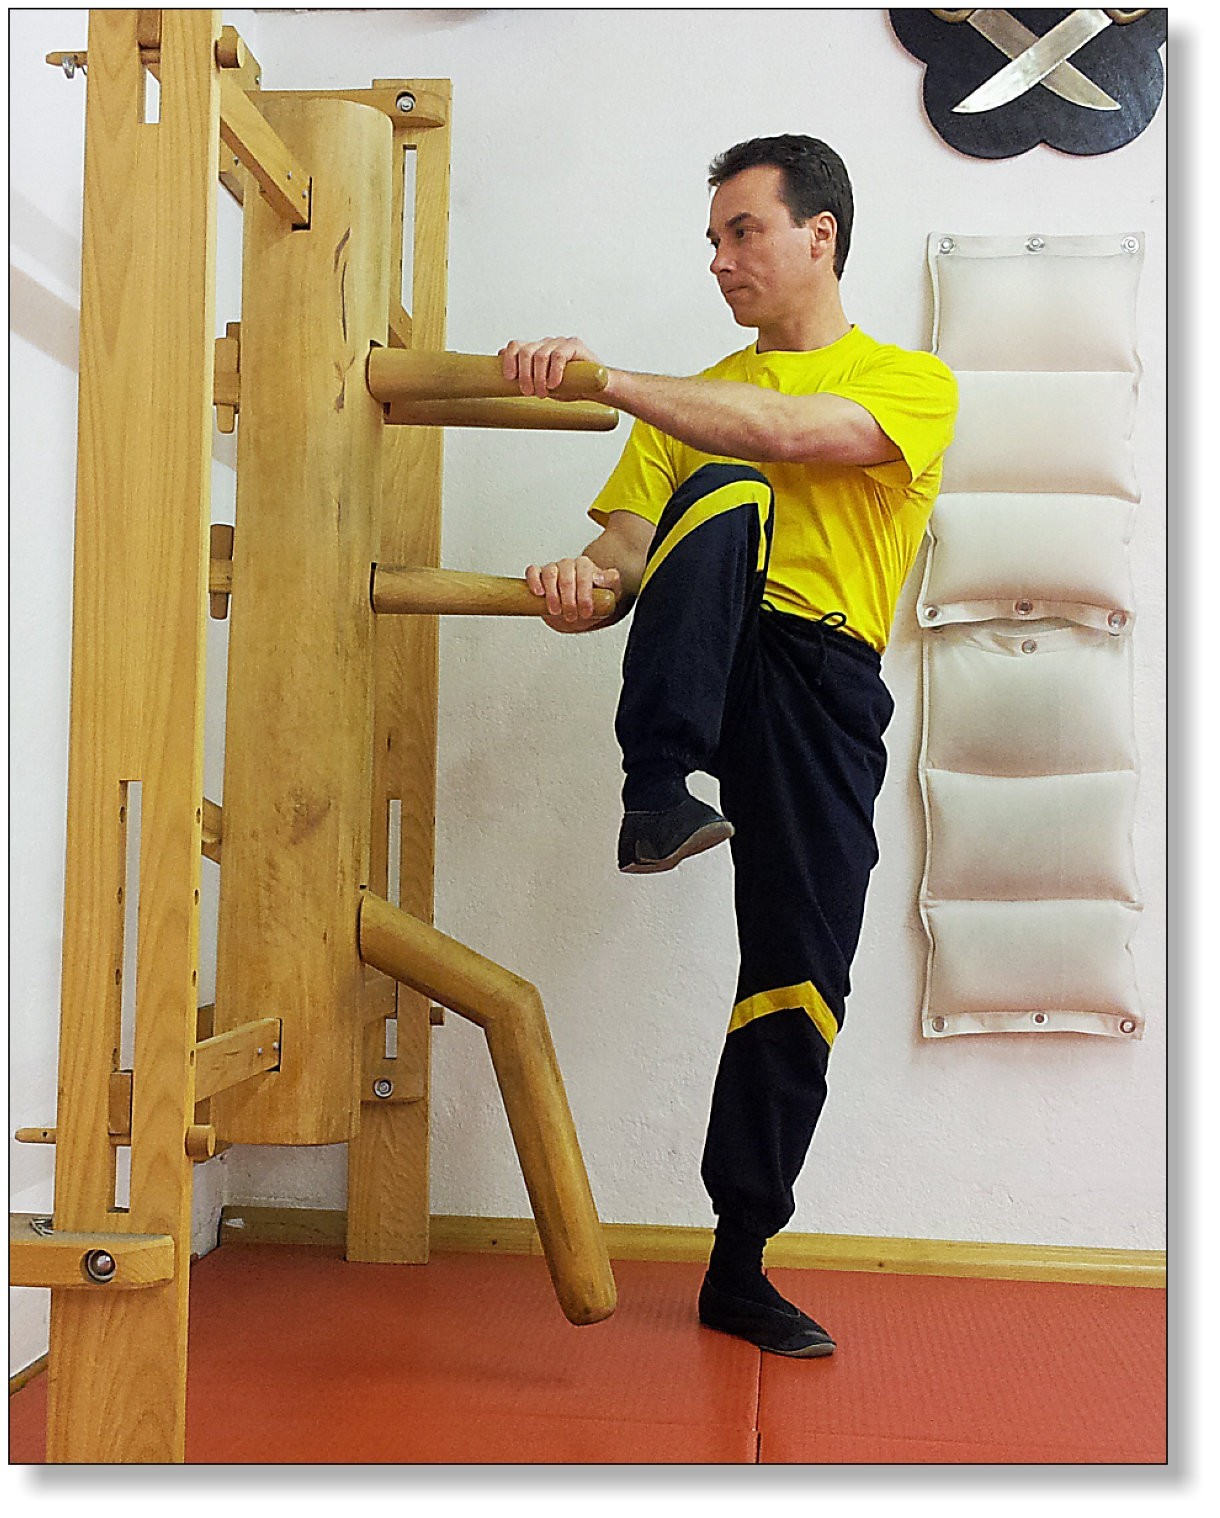 Training on the wooden dummy allows the practice of dangerous techniques